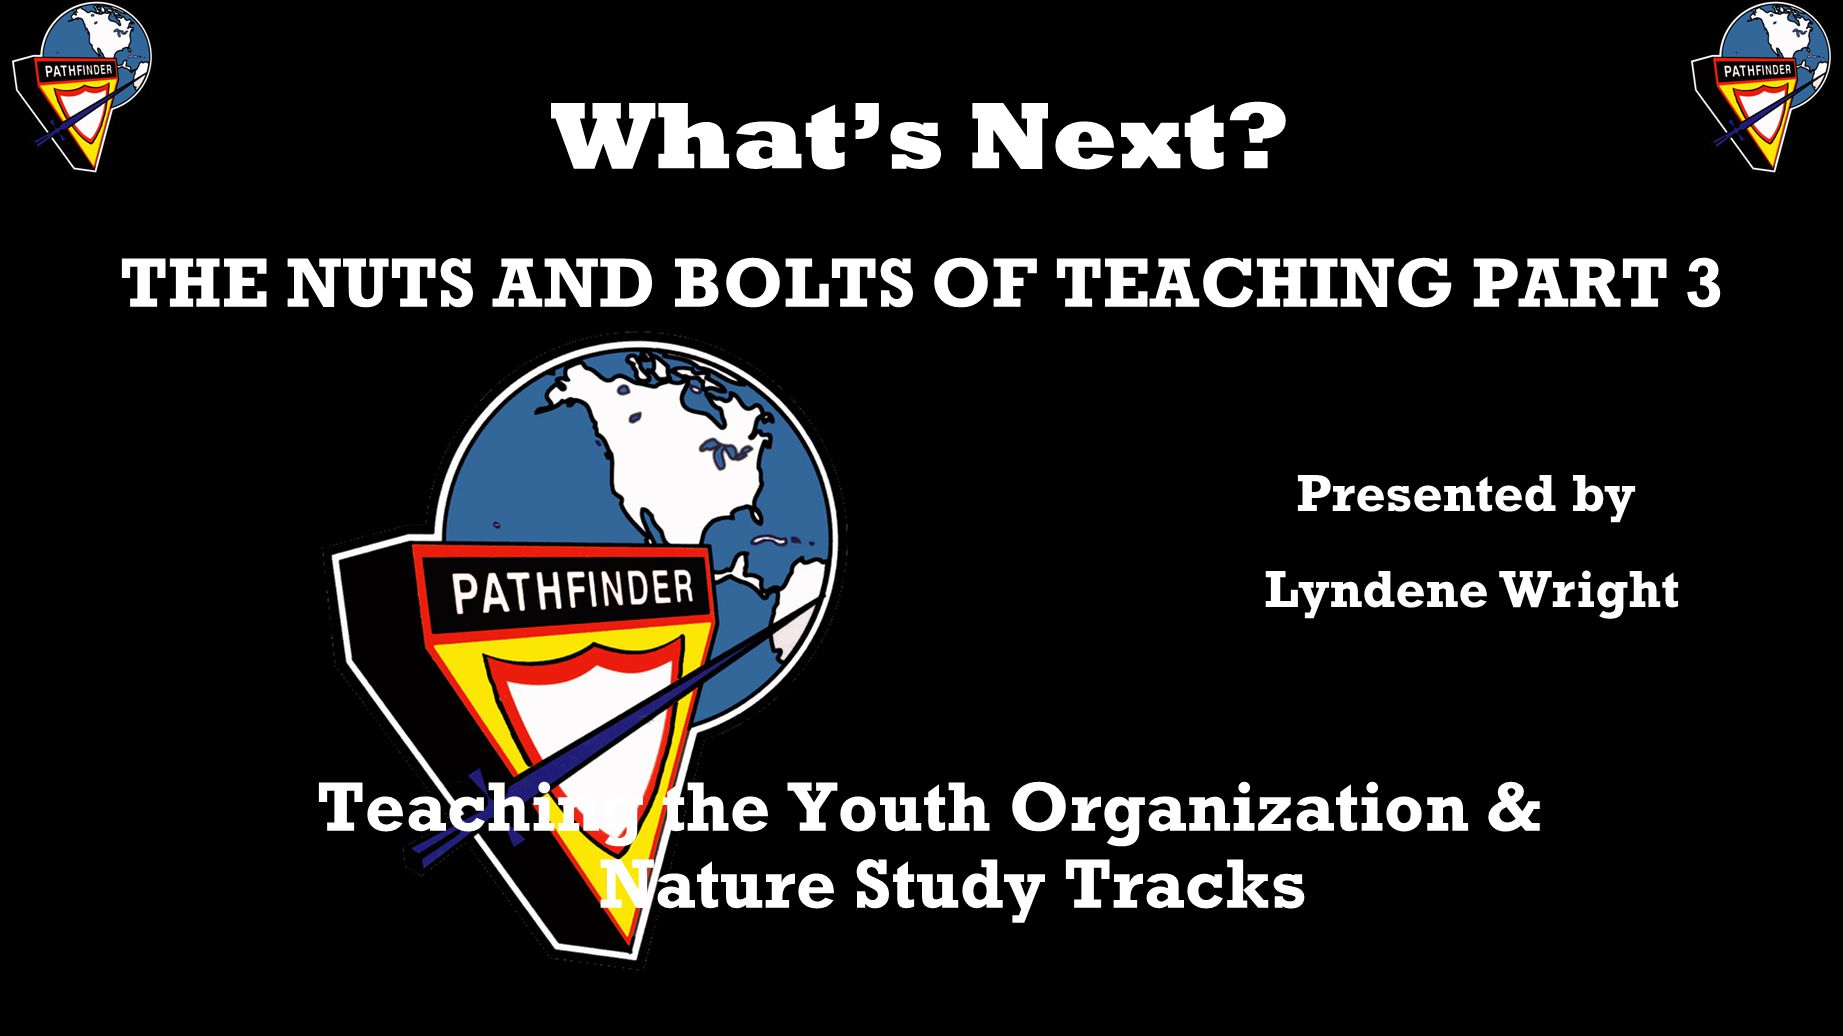 What's Next THE NUTS AND BOLTS OF TEACHING PART 3